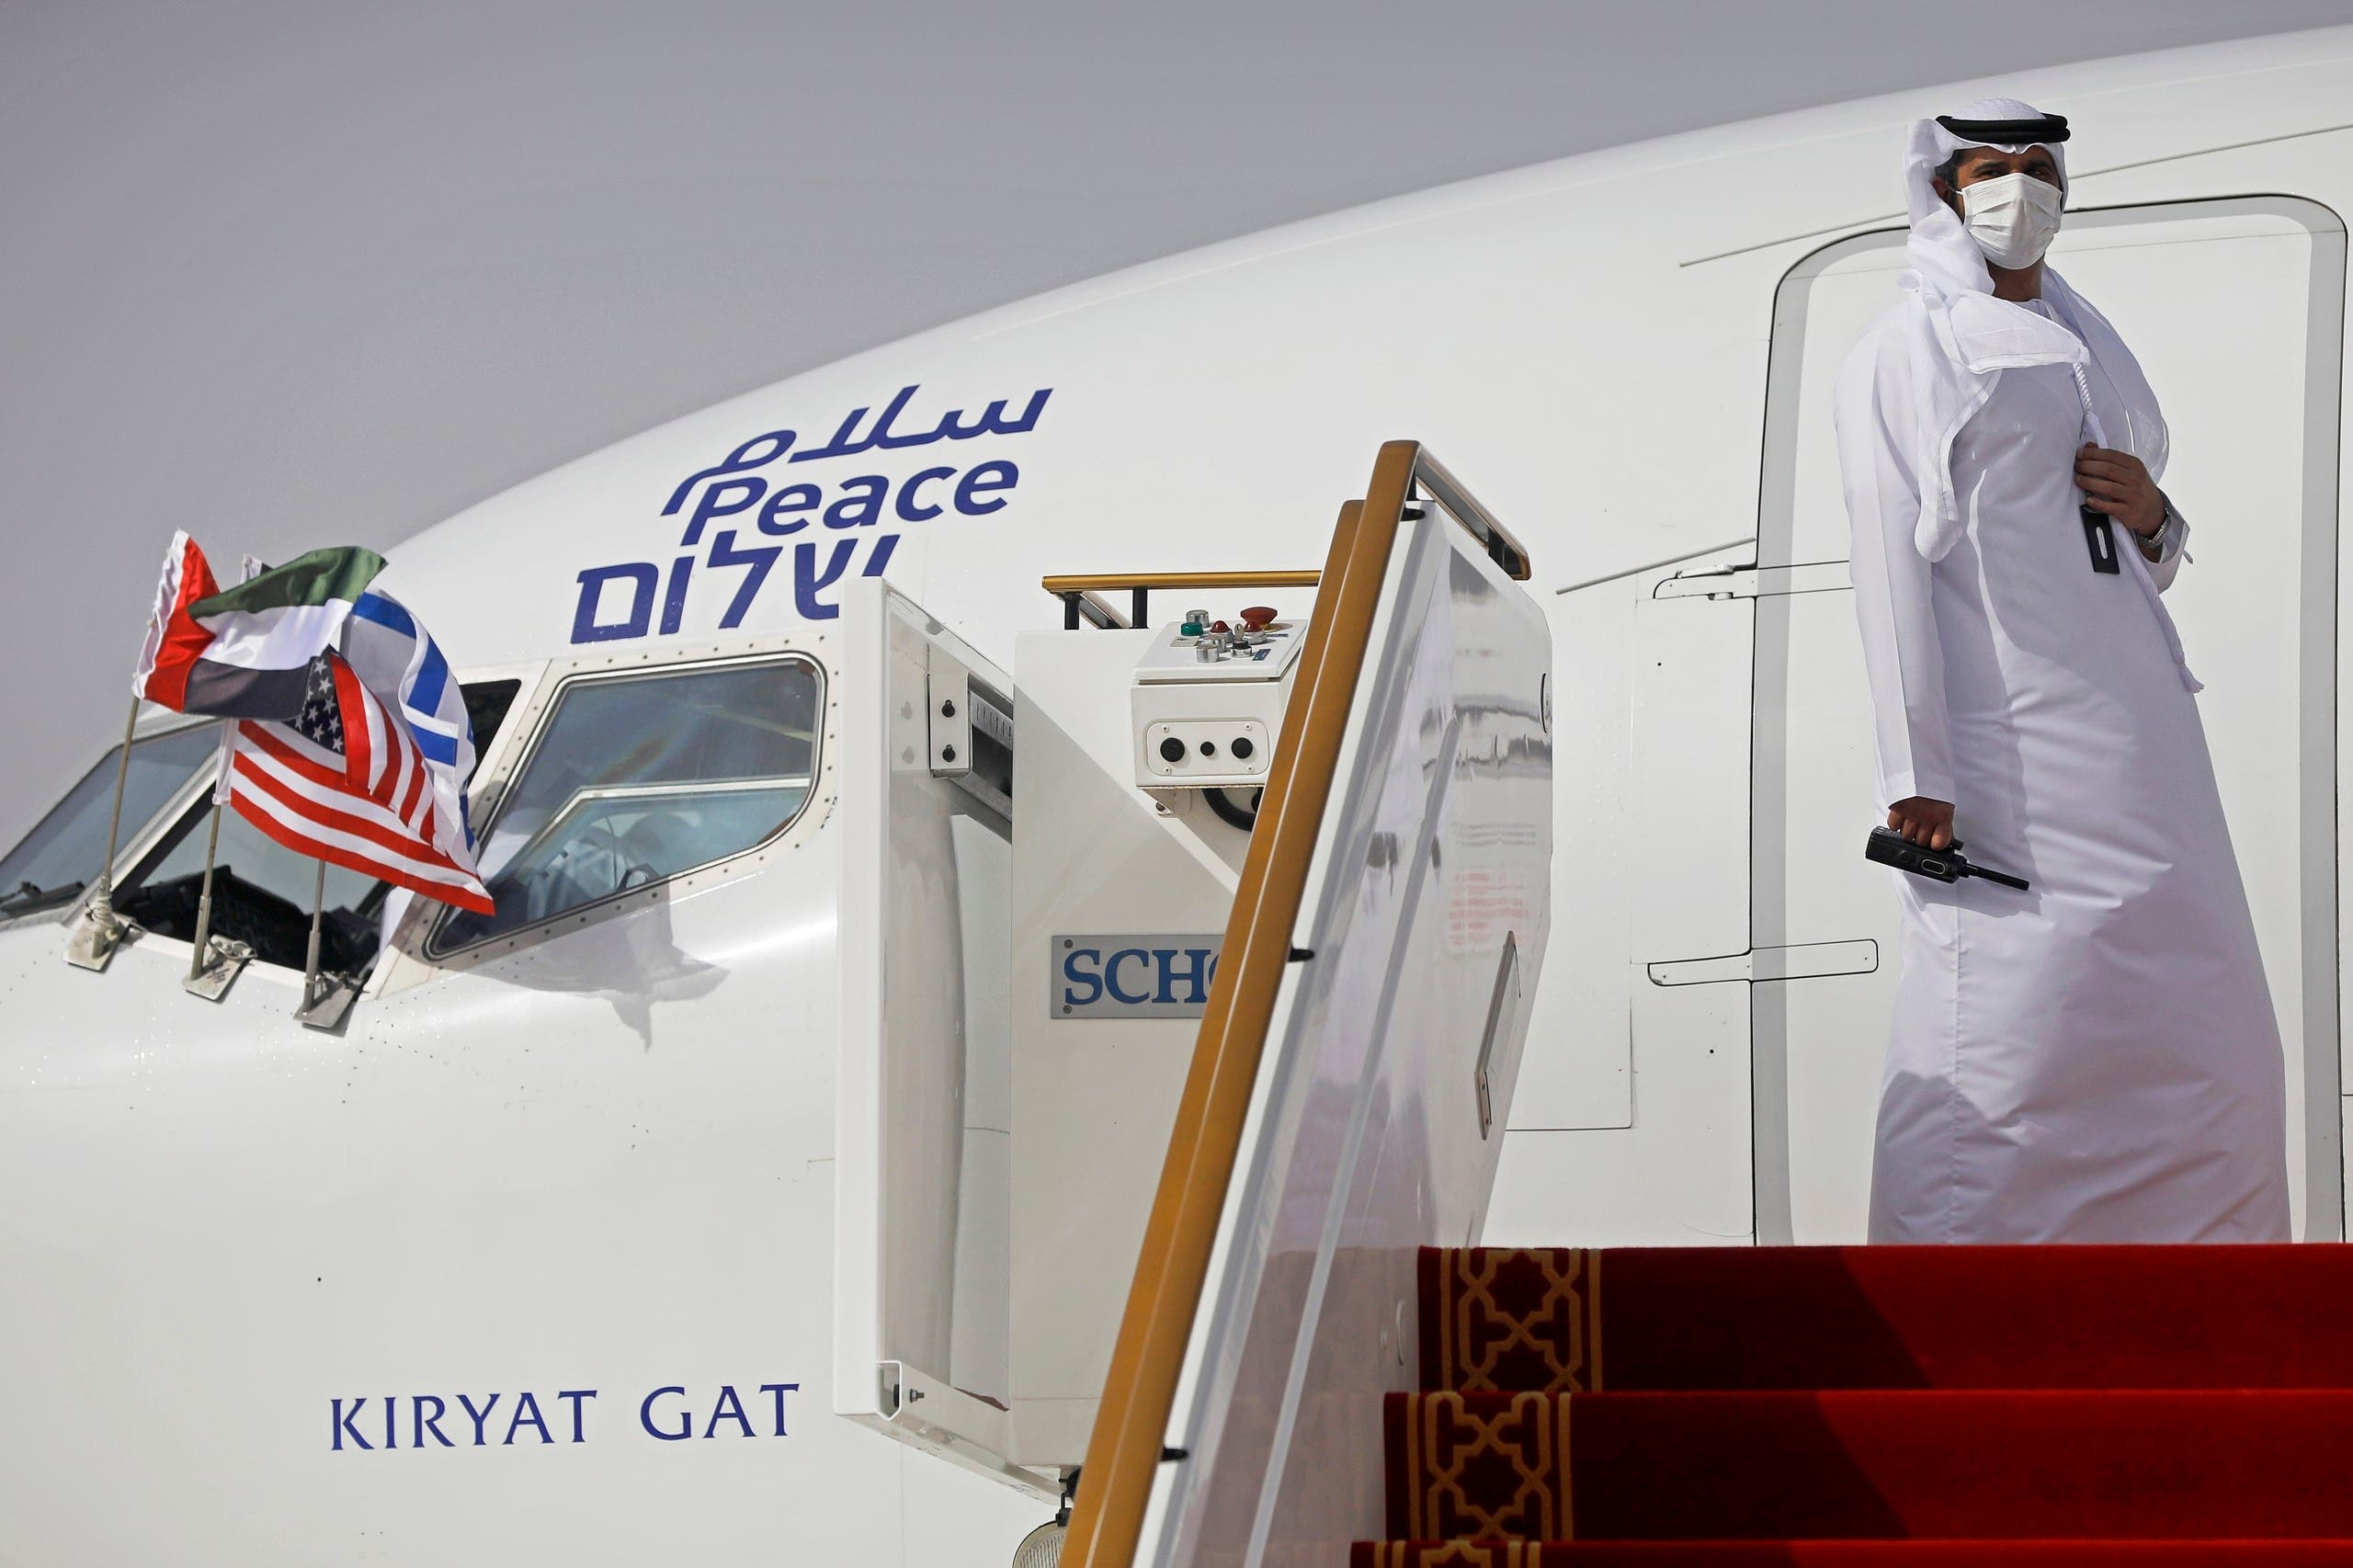 An official stands at the door of an Israeli El Al airliner after it landed in Abu Dhabi, United Arab Emirates on August 31, 2020. (AP)